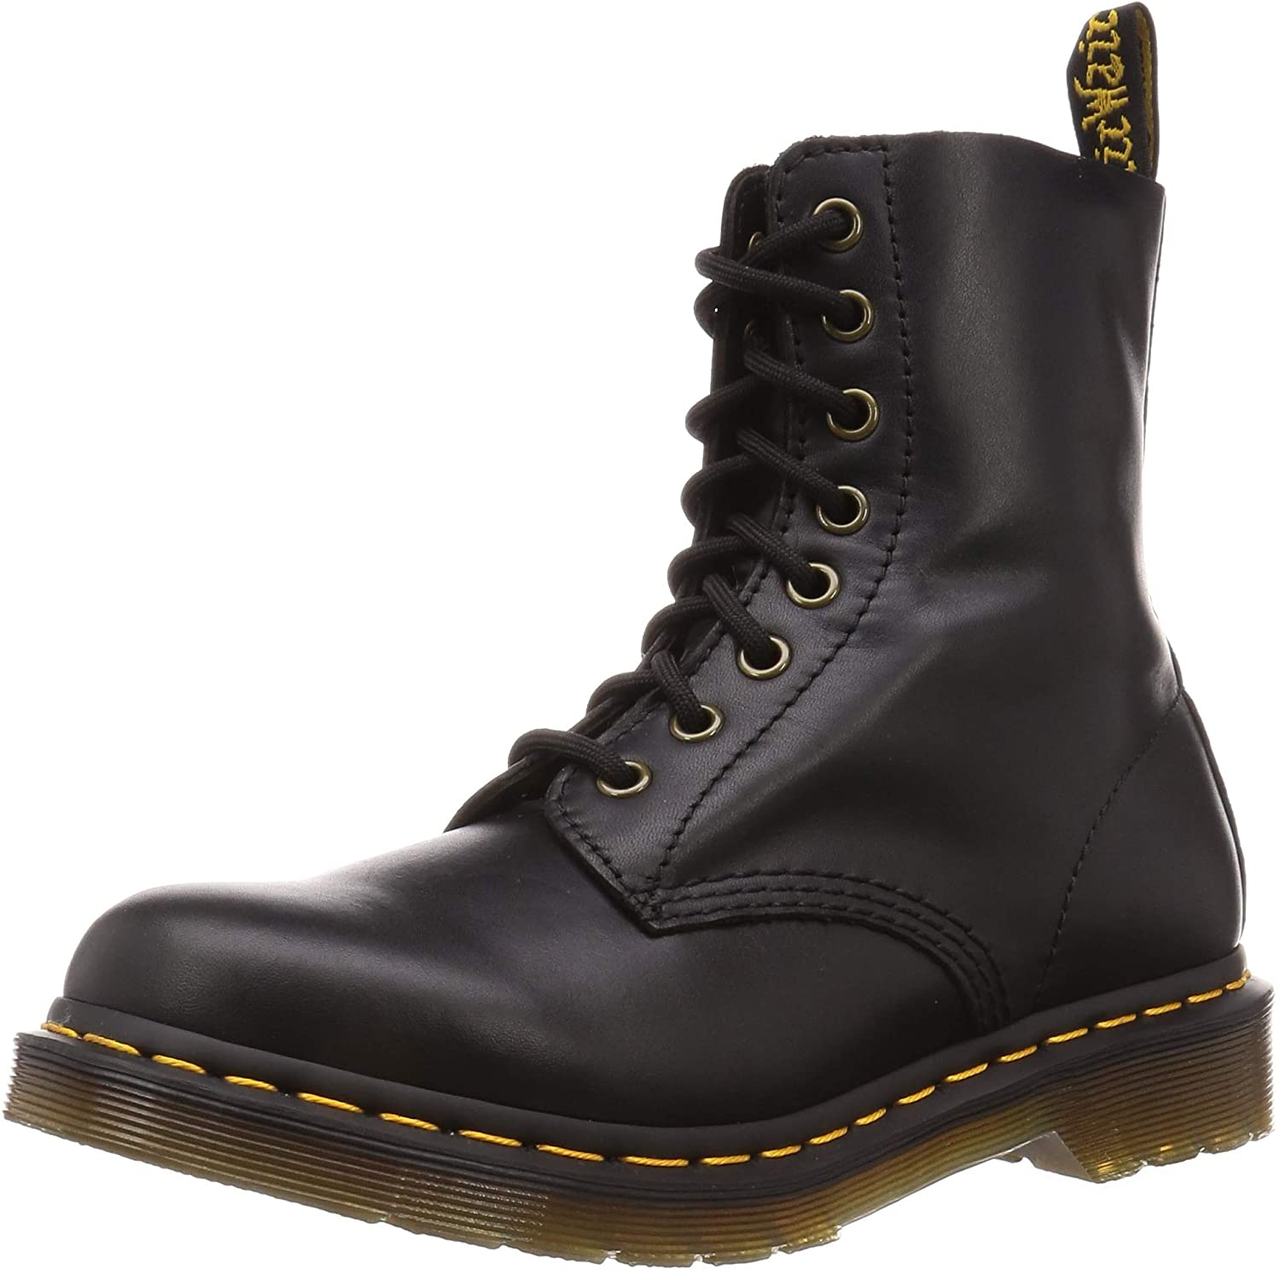 Etymotic Research、Dr. Martens 马汀博士、ECCO 爱步等